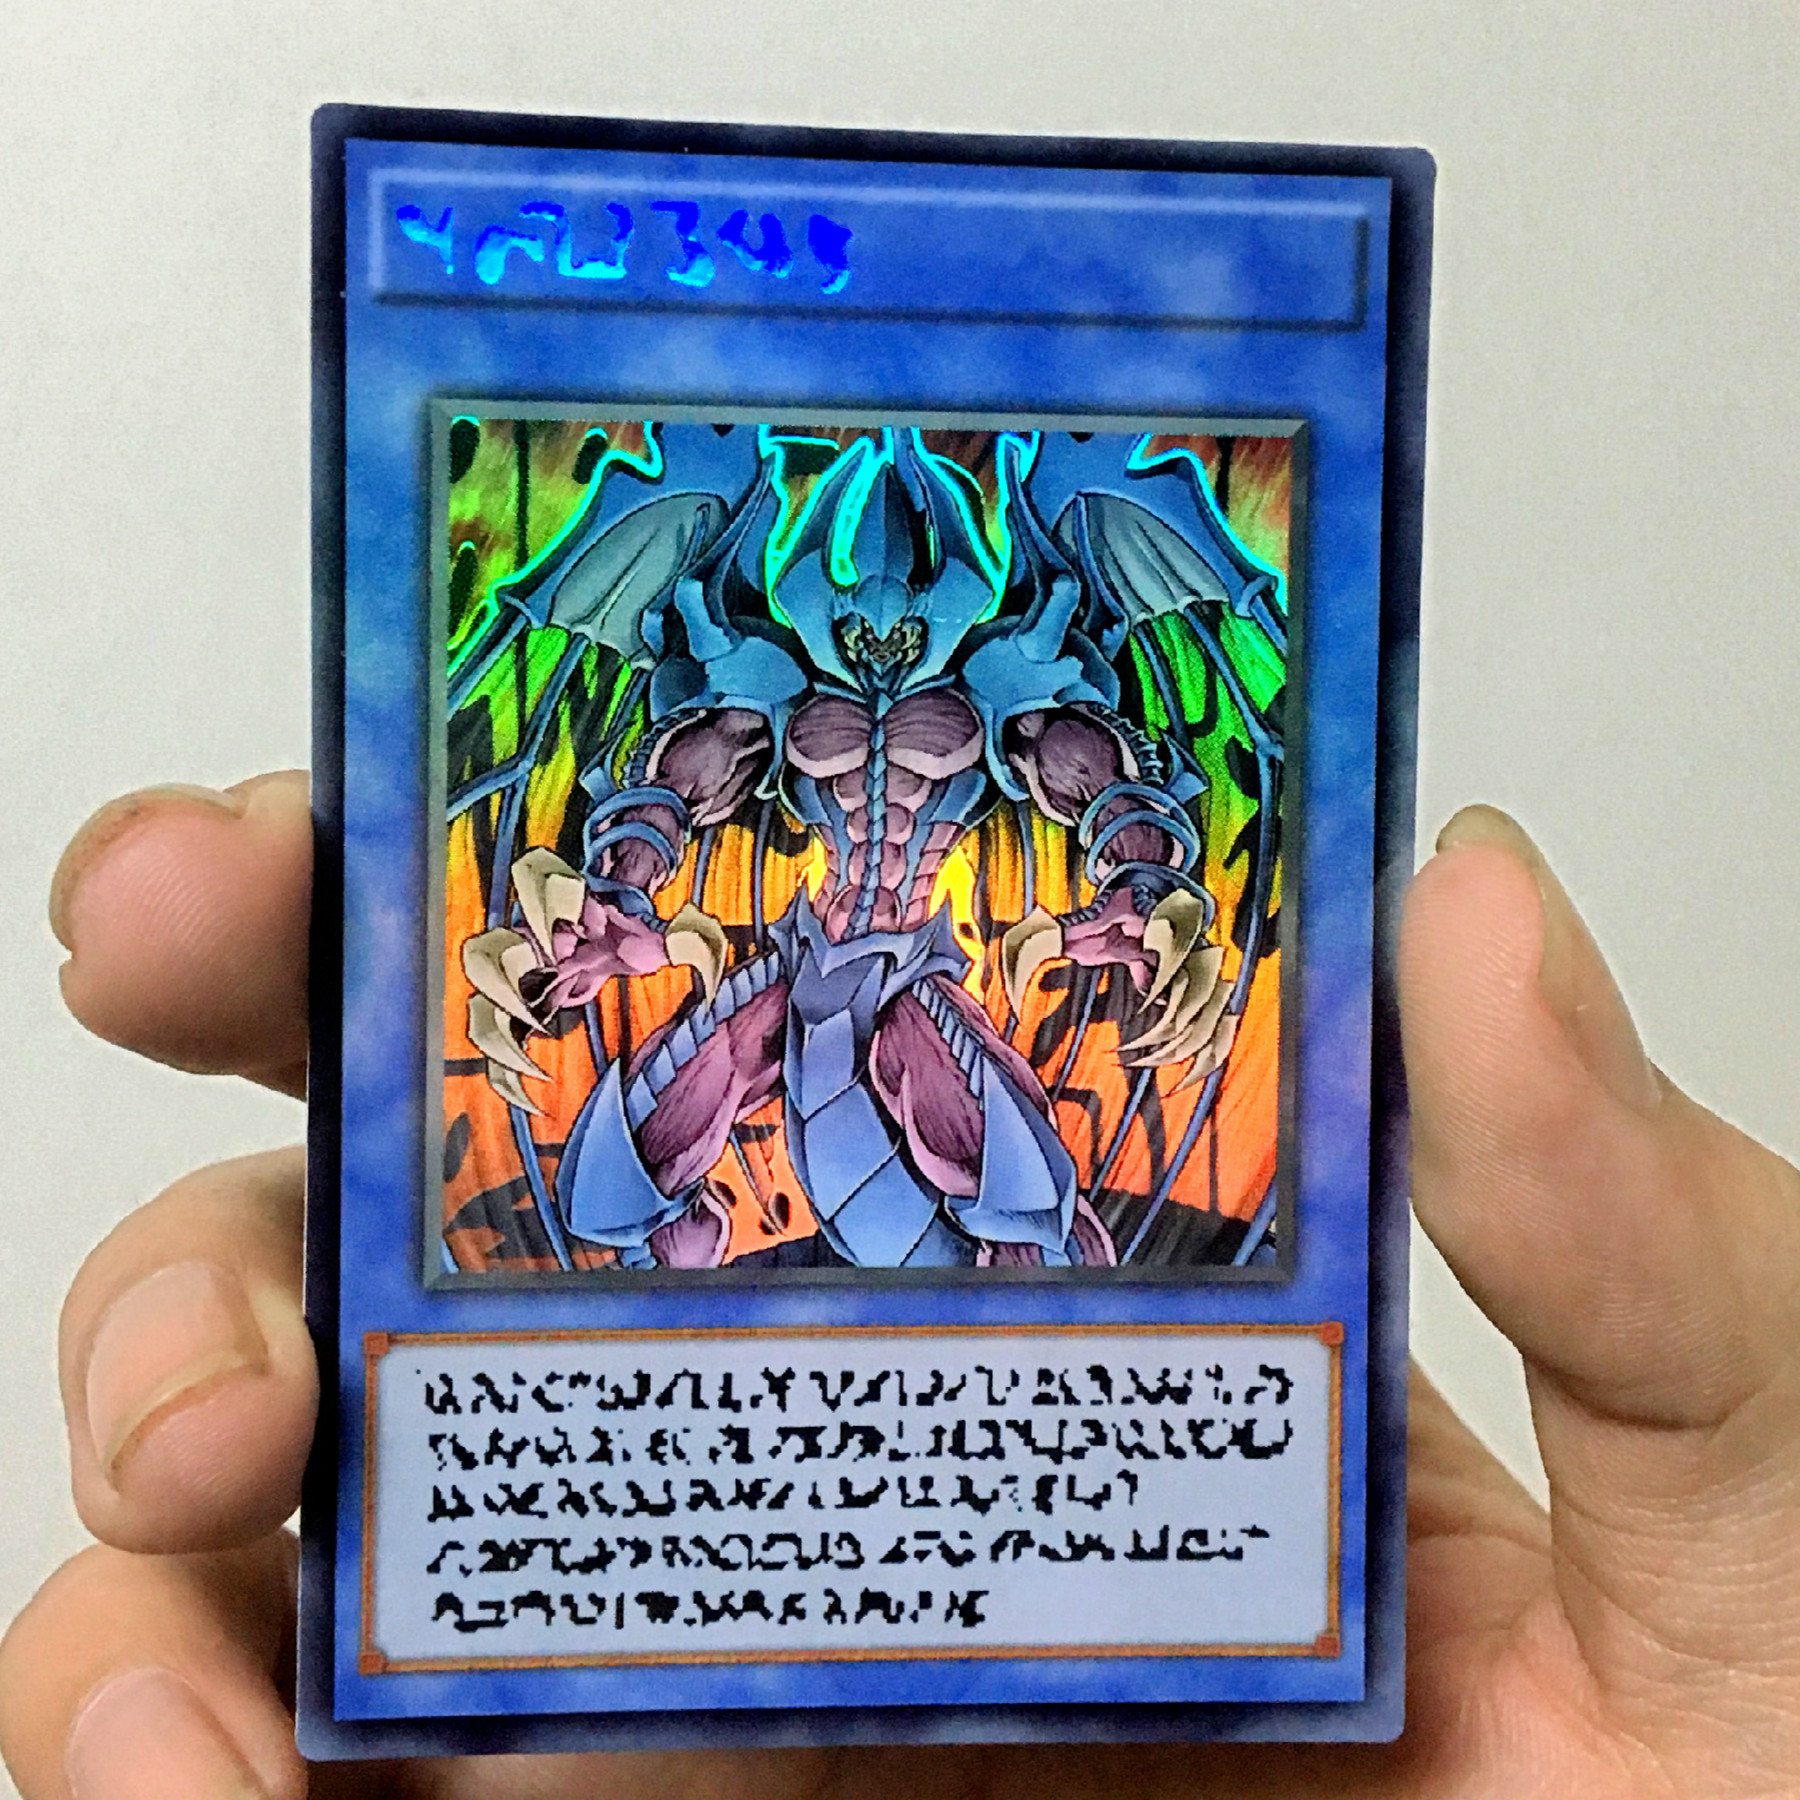 Yu Gi Oh Raviel Lord Of Phantasms DIY Colorful Toys Hobbies Hobby Collectibles Game Collection Anime Cards